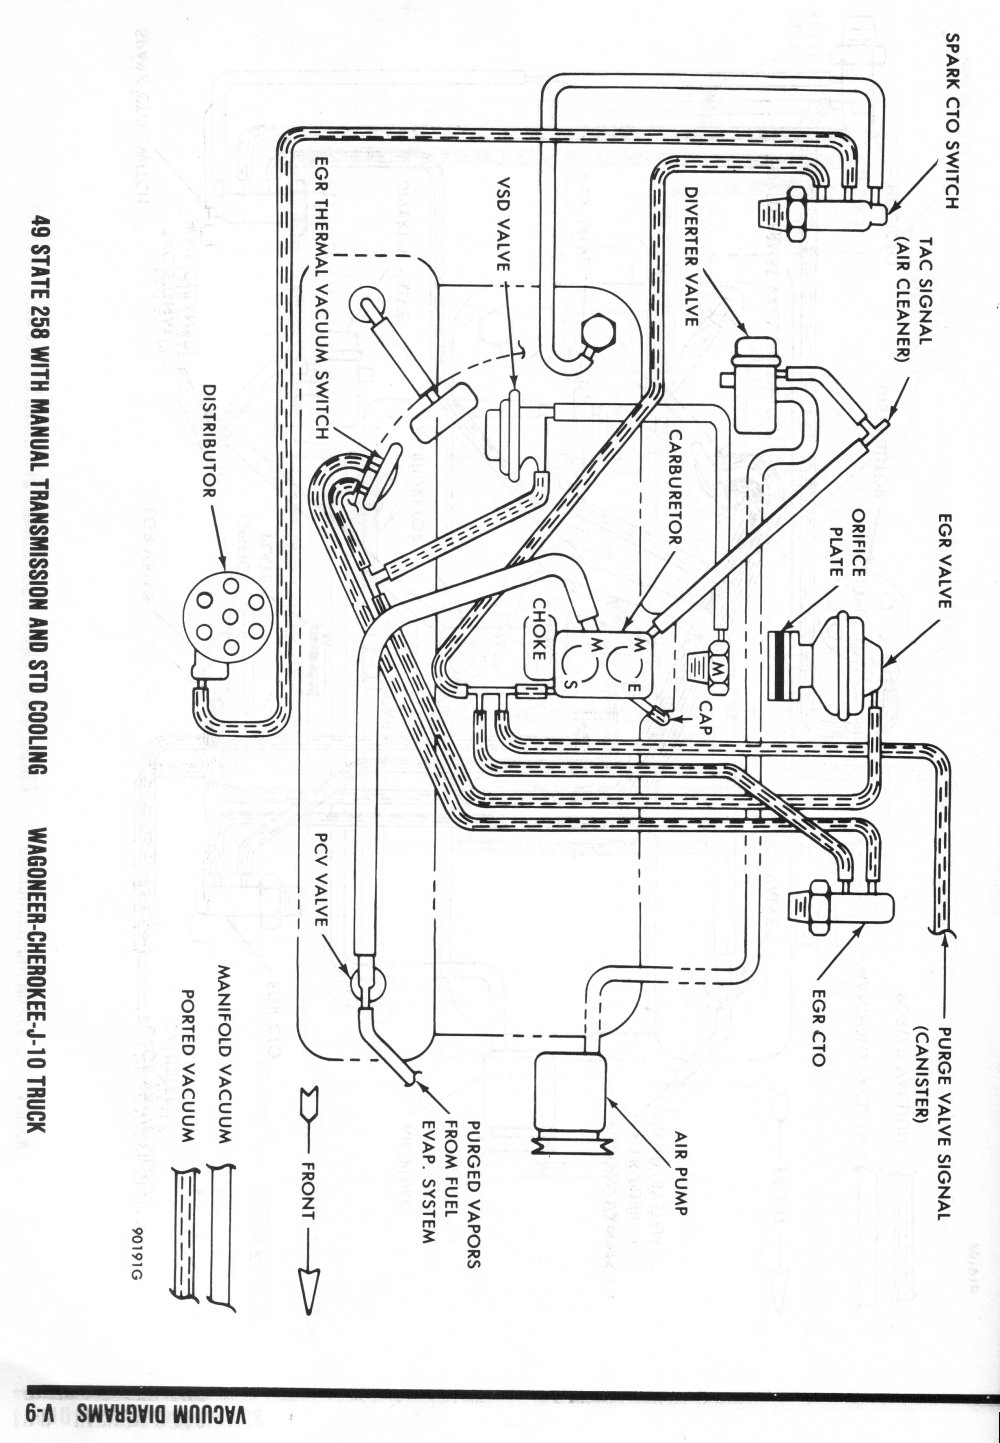 hight resolution of 49 state 258 cherokee wagoneer j10 manual tansmission std cooling